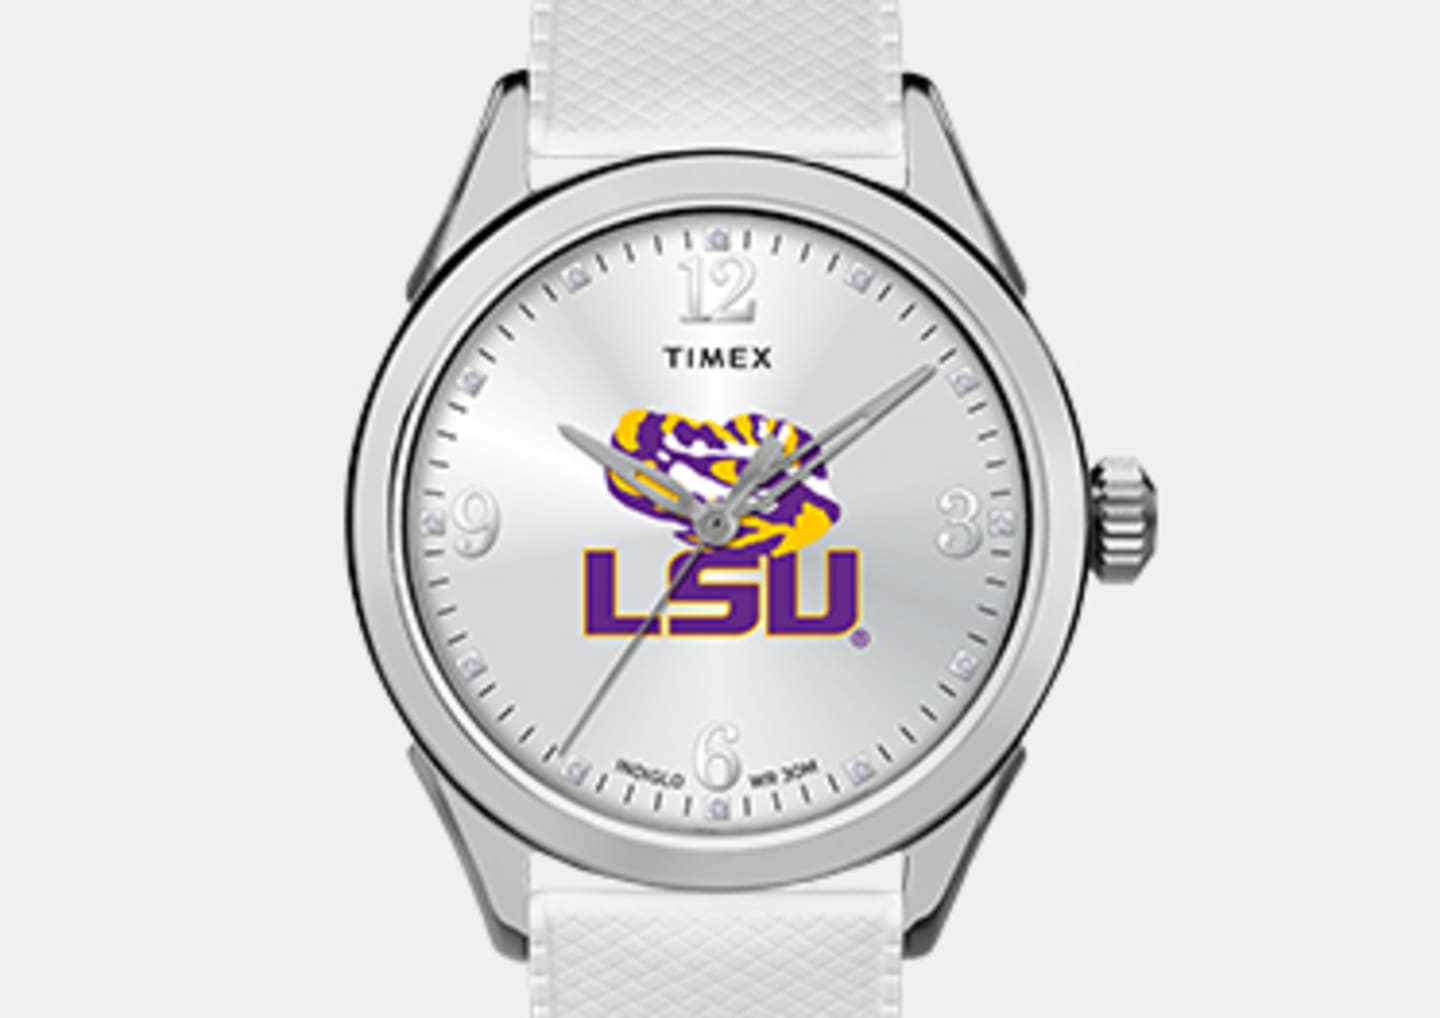 Women's Silver LSU Watch White Straps And Logo In The Center